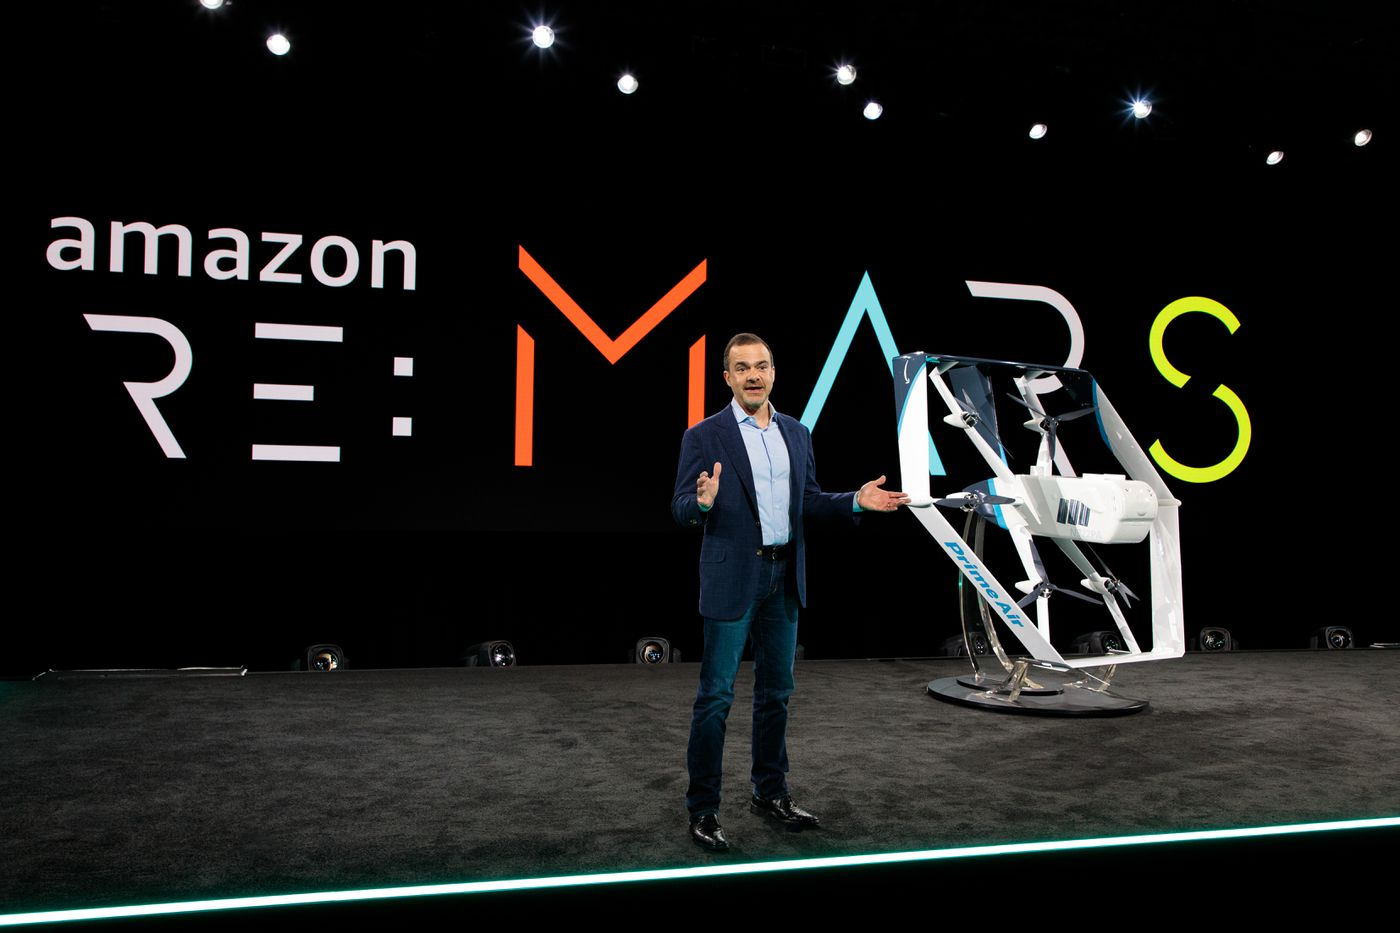 Here's Amazon's new transforming Prime Air delivery drone